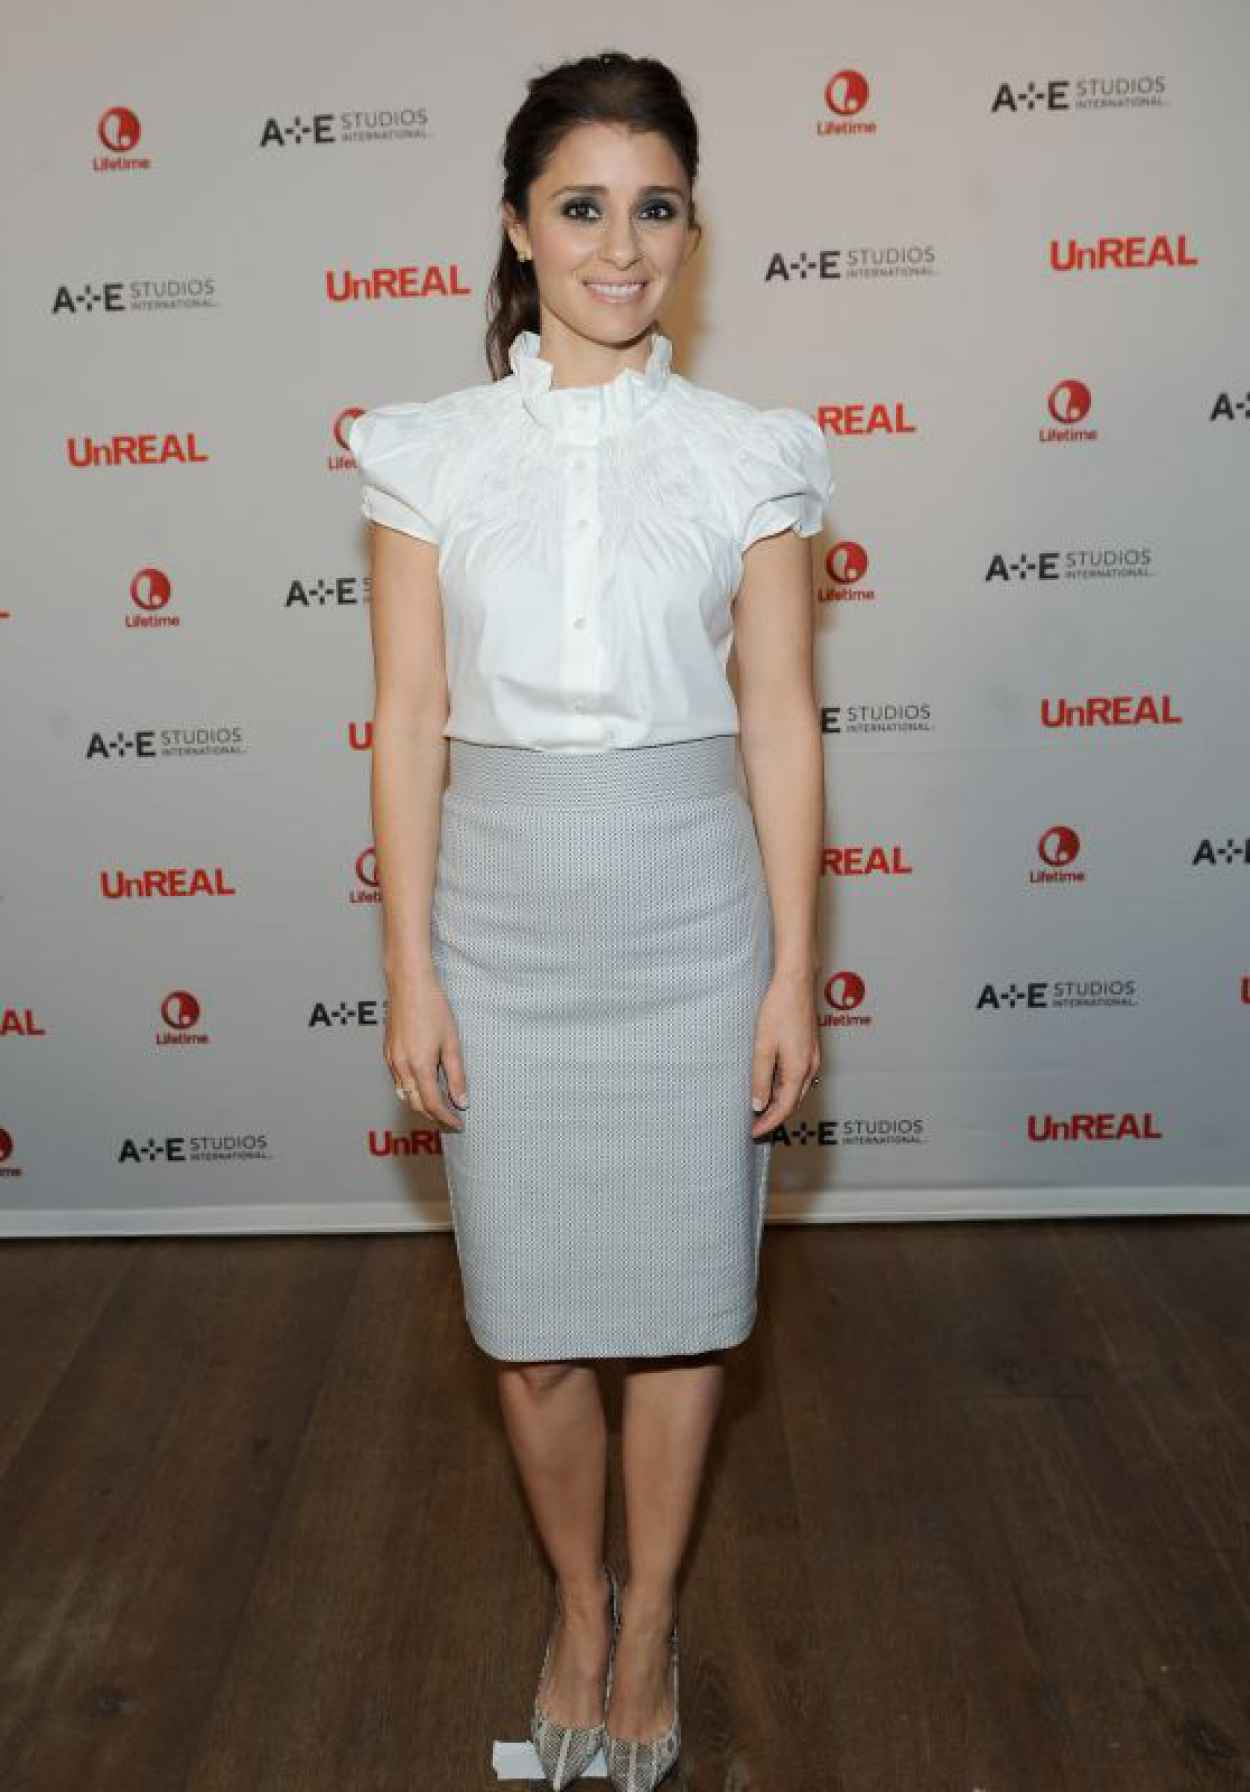 Shiri Appleby - UnREAL International Press Event in NYC, April 2015-1